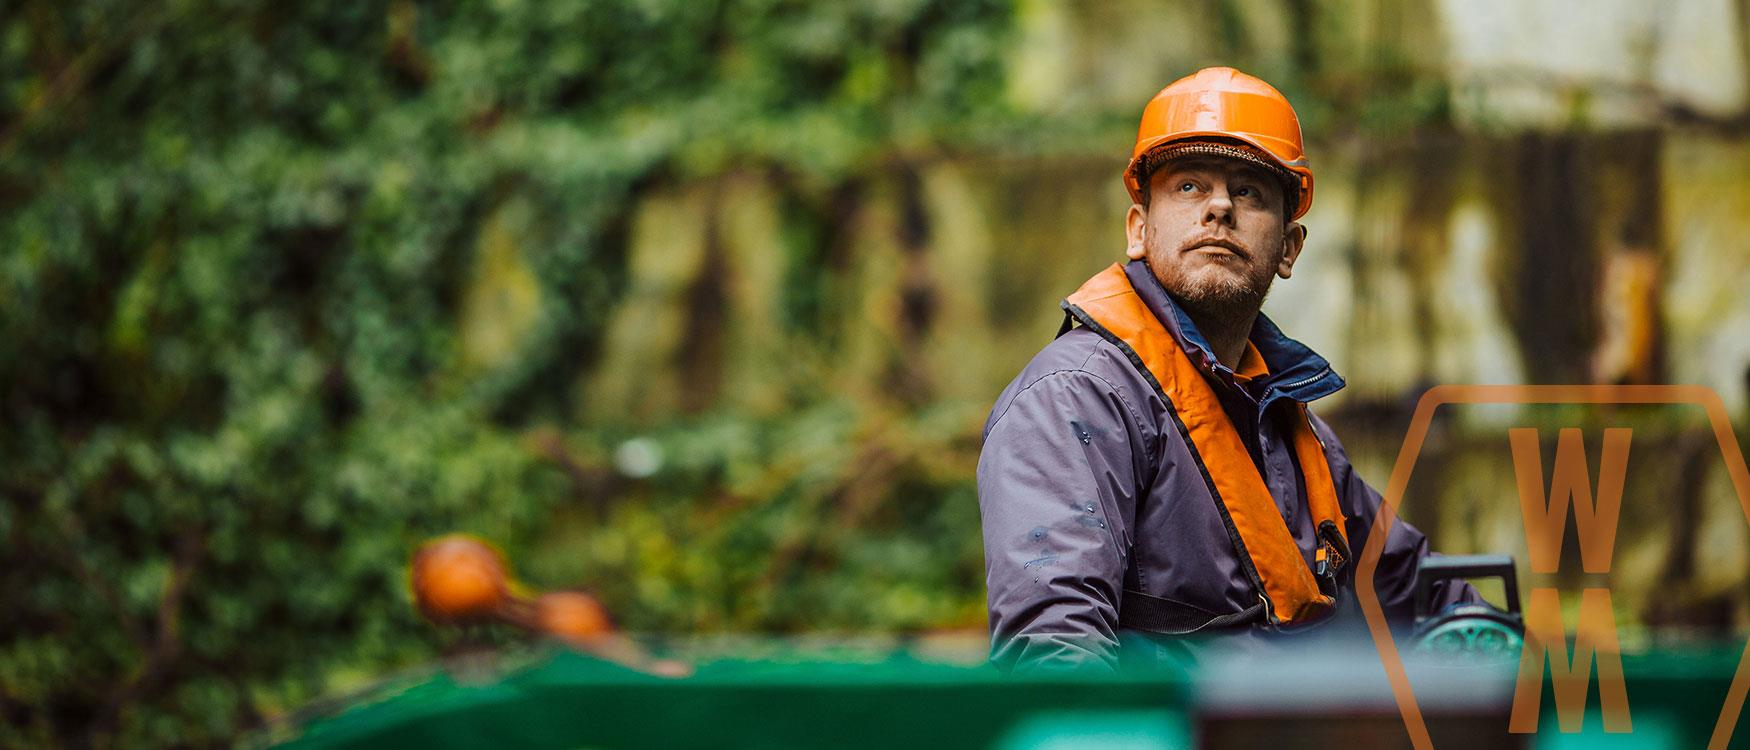 Dudley Canal & Tunnel Trust